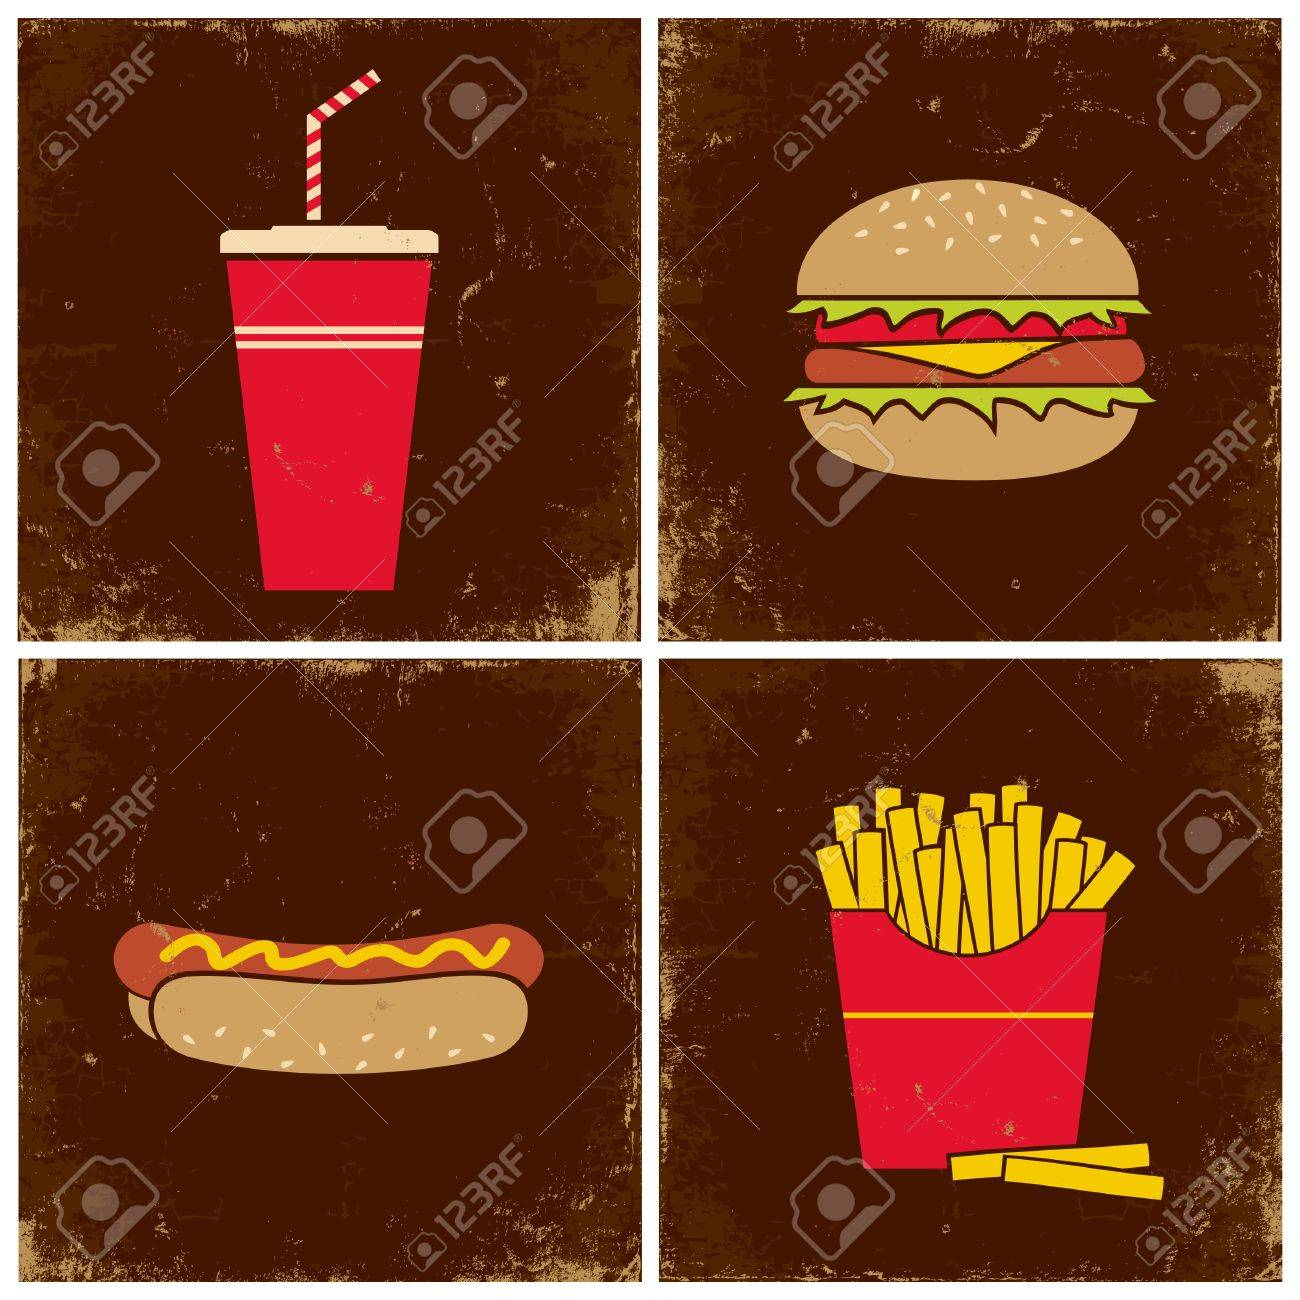 Illustrations cola, a hamburger, french fries and hot dogs Stock Vector - 10921959